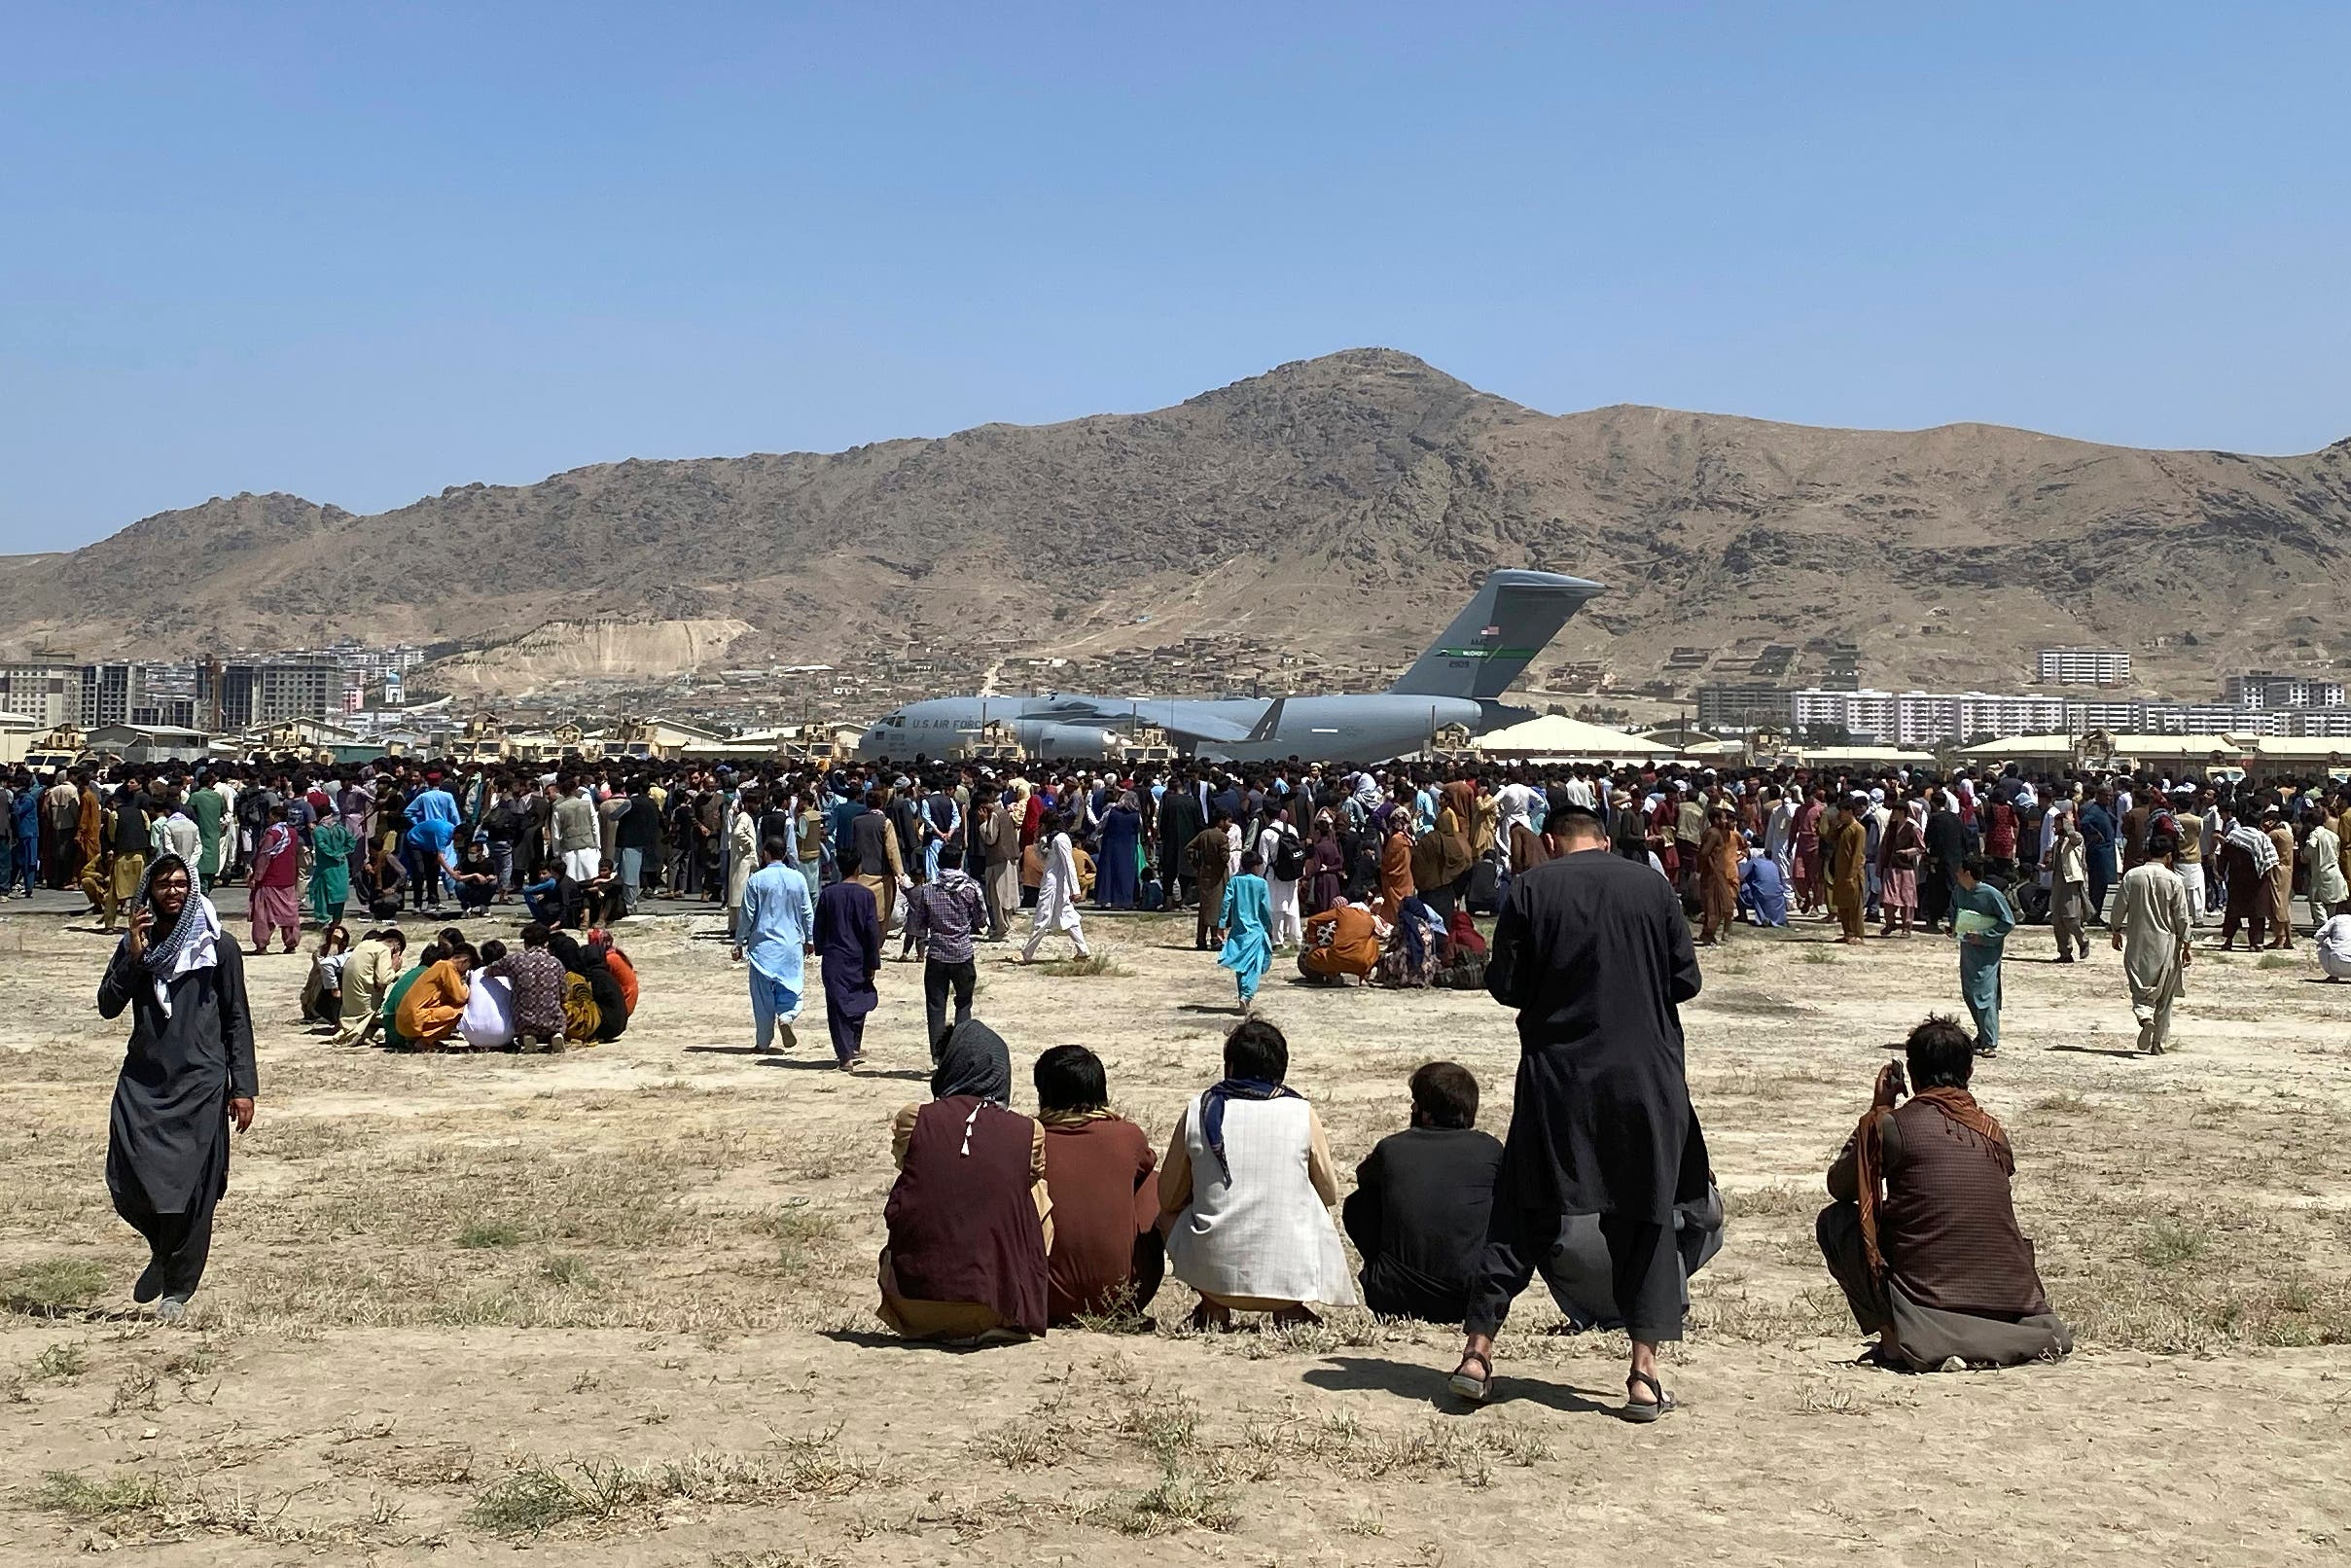 Hundreds of people gather near a US Air Force C-17 transport plane at a perimeter at the international airport in Kabul, Afghanistan, Monday, Aug. 16, 2021. (AP)